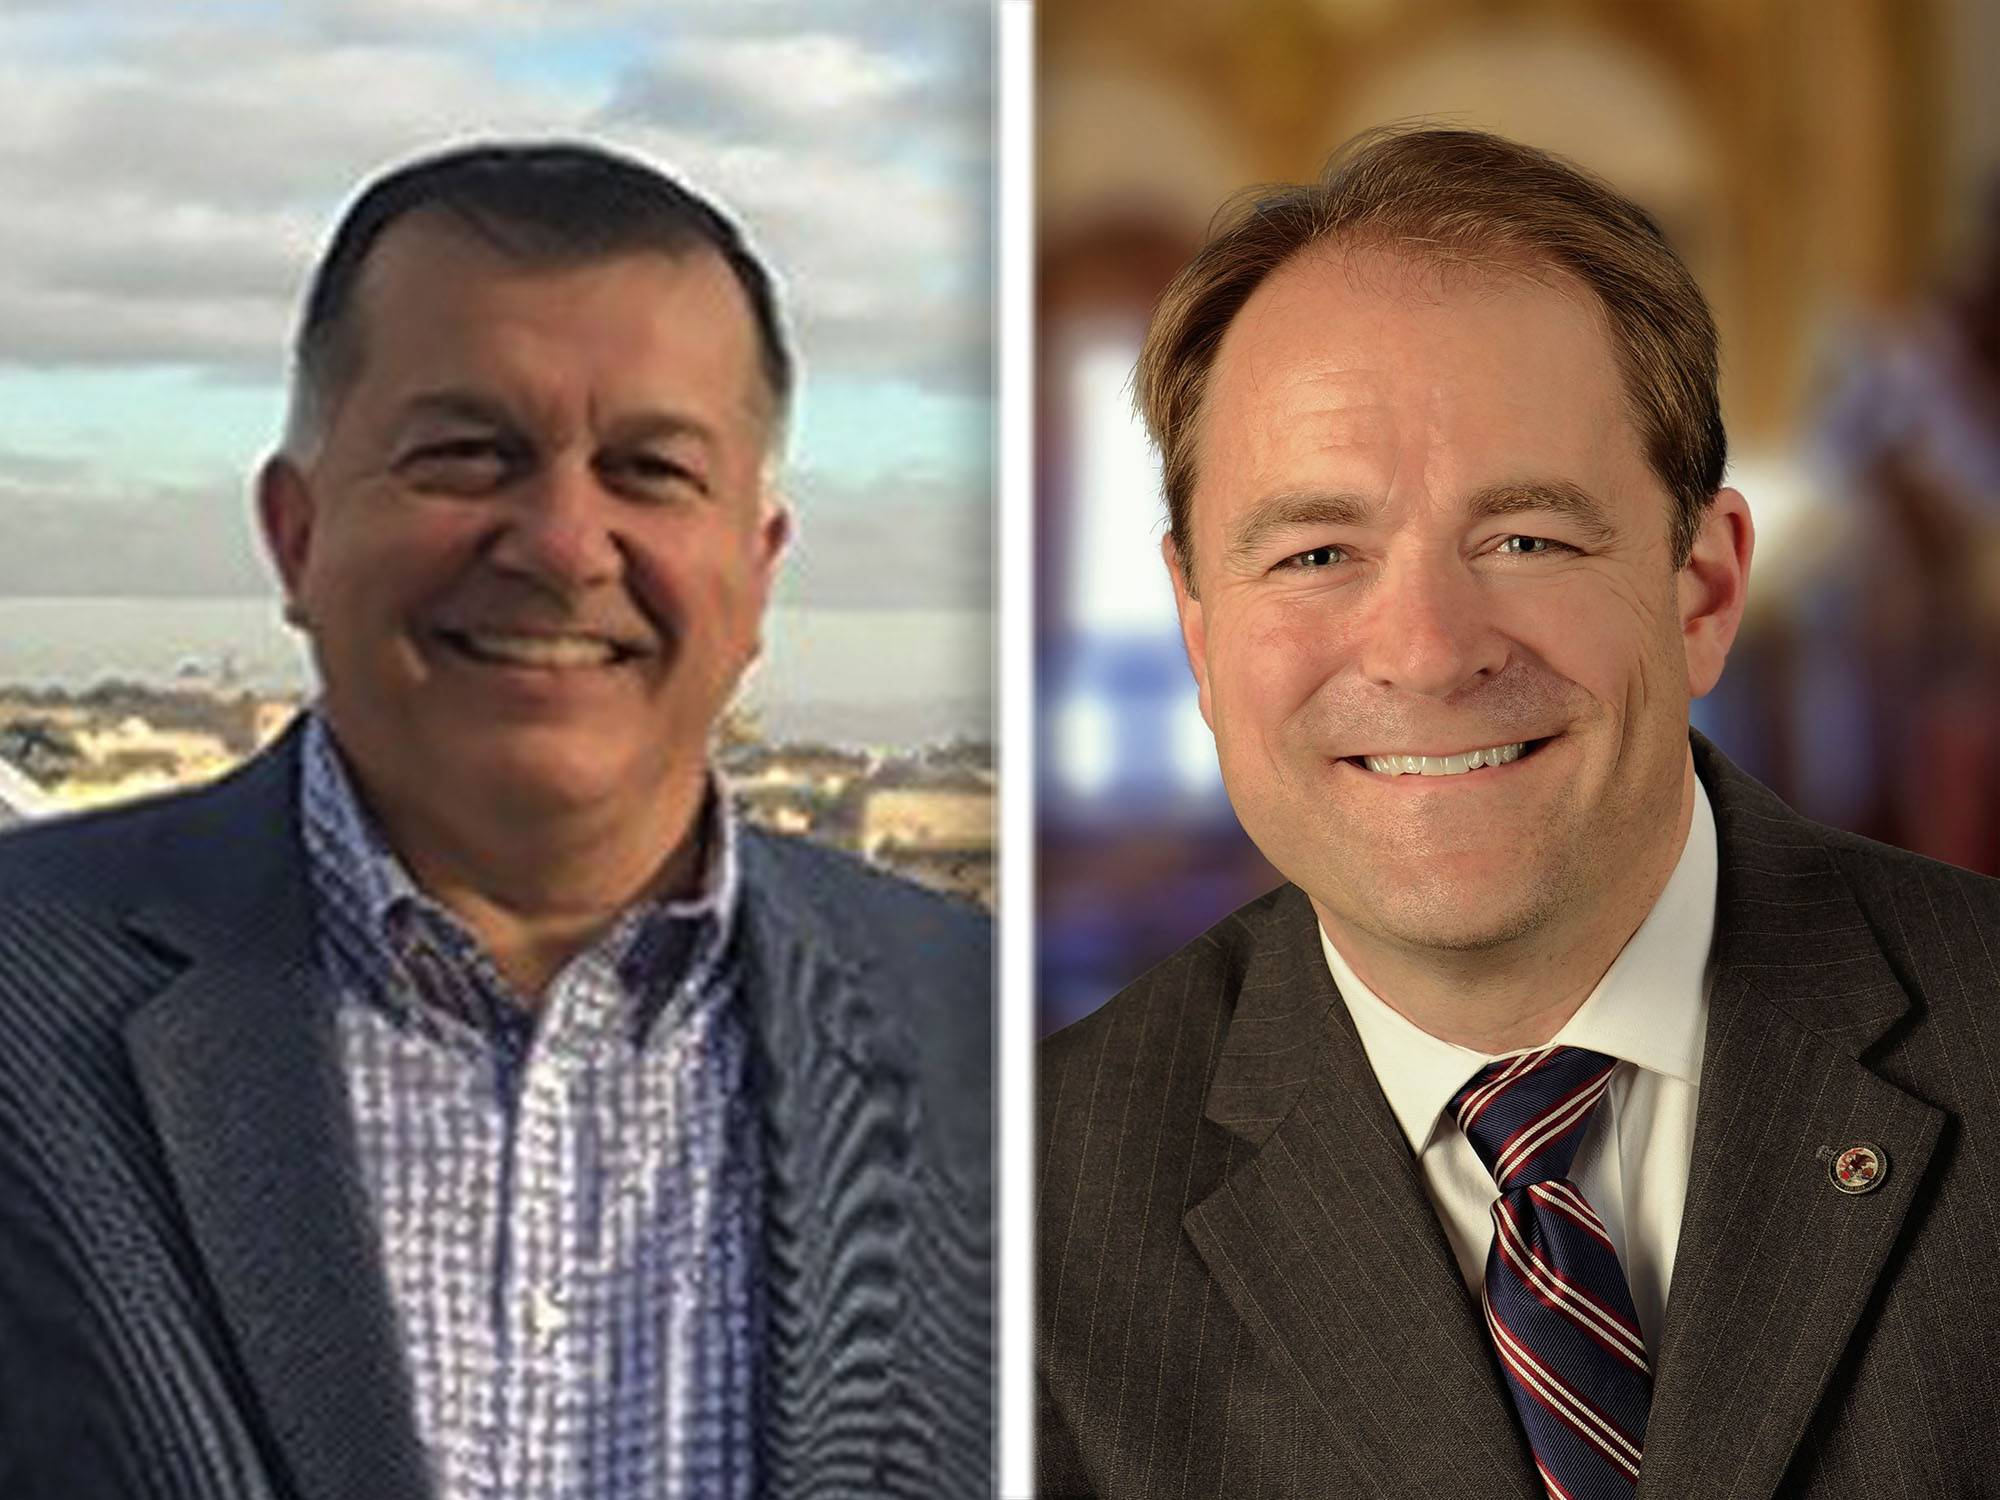 Democrat Tom Georges, left, and GOP incumbent Dan McConchie are candidates for the 26th state Senate District seat in the Nov. 6 election.